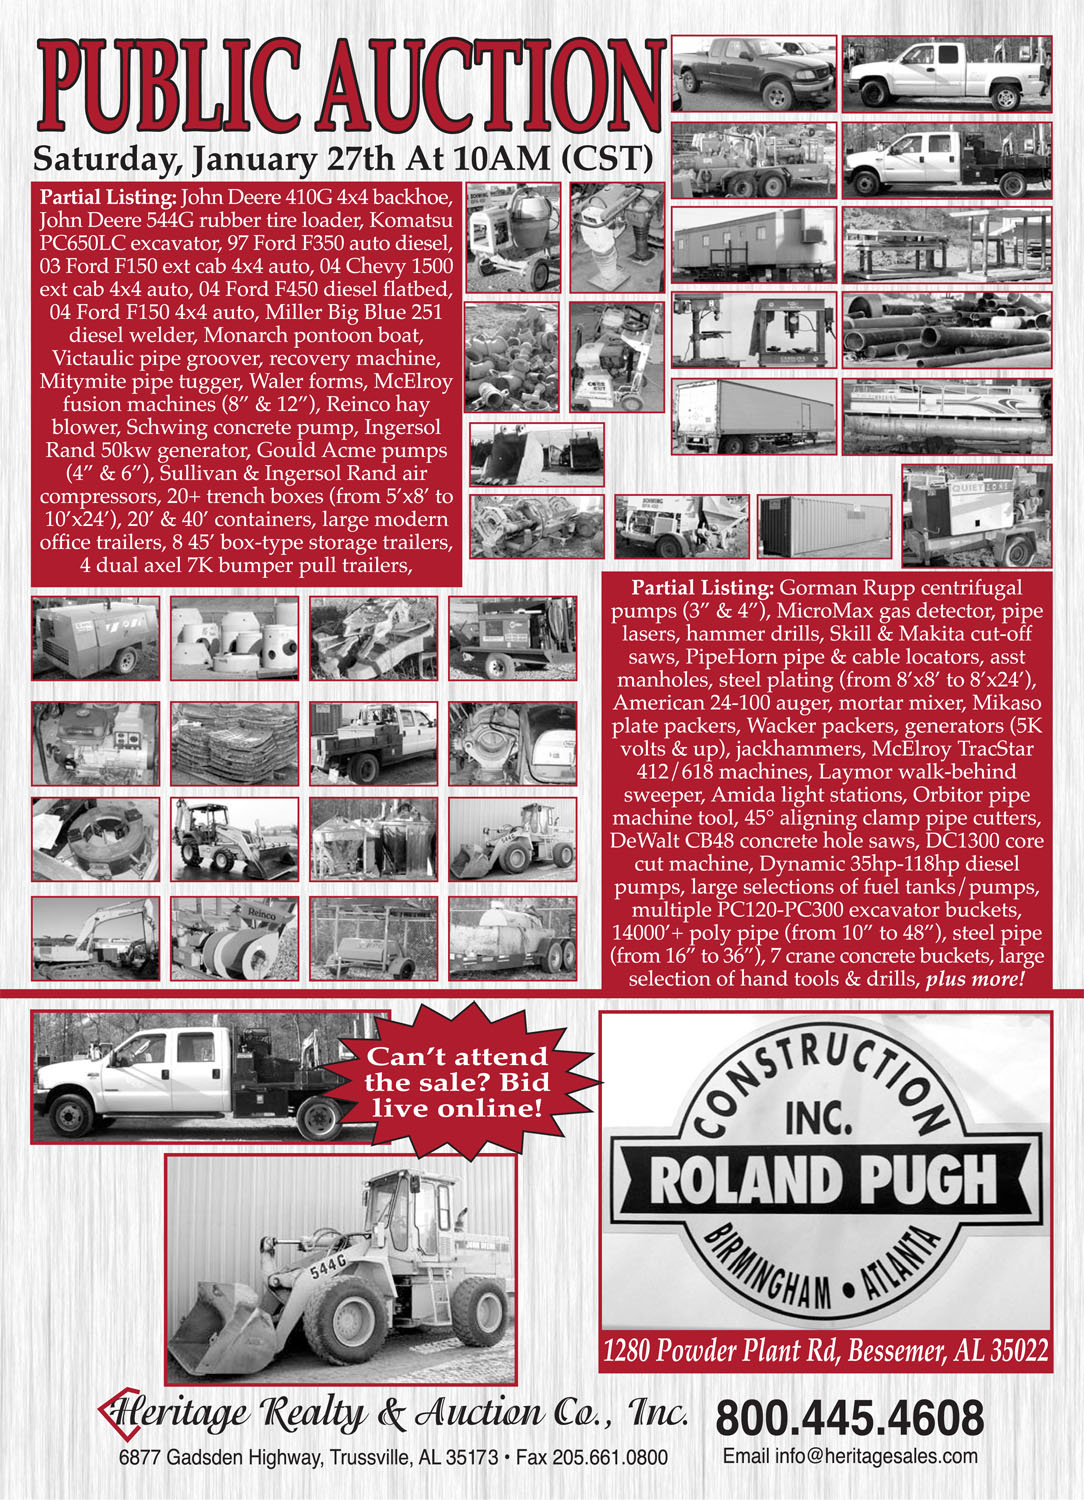 Roland Pugh Construction